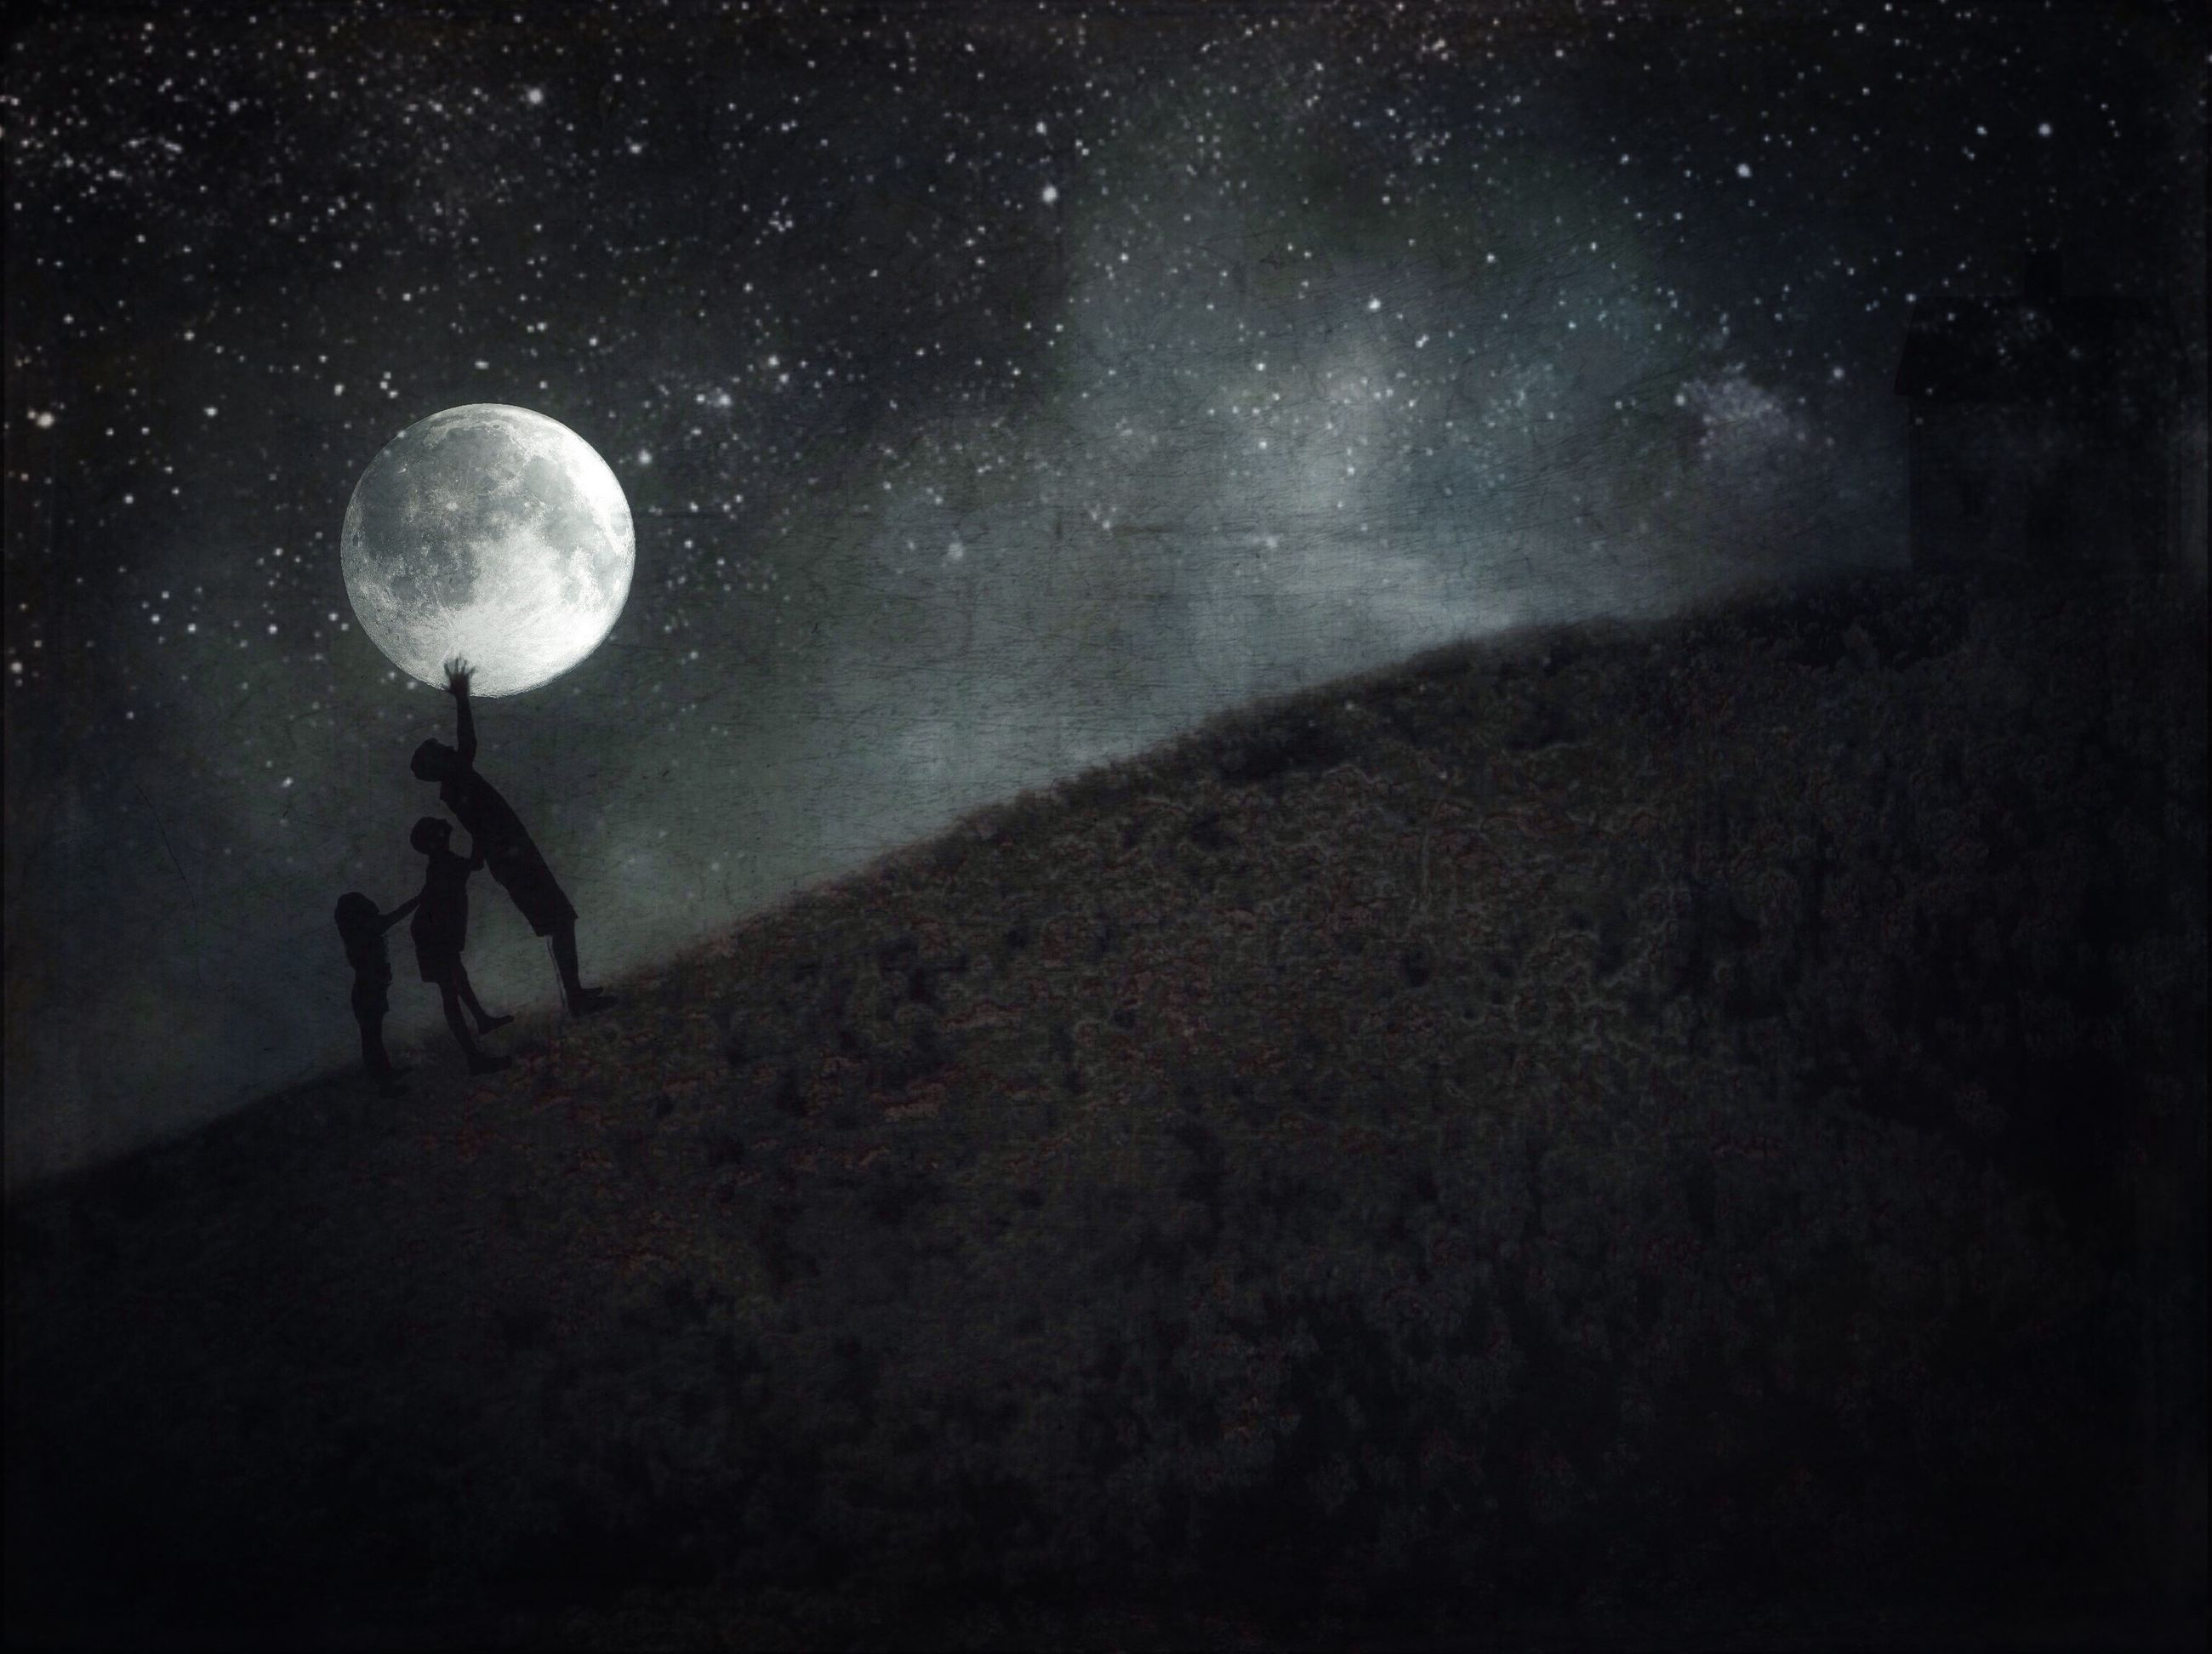 night, silhouette, men, lifestyles, leisure activity, full length, exploration, unrecognizable person, dark, sky, standing, astronomy, nature, star field, discovery, walking, illuminated